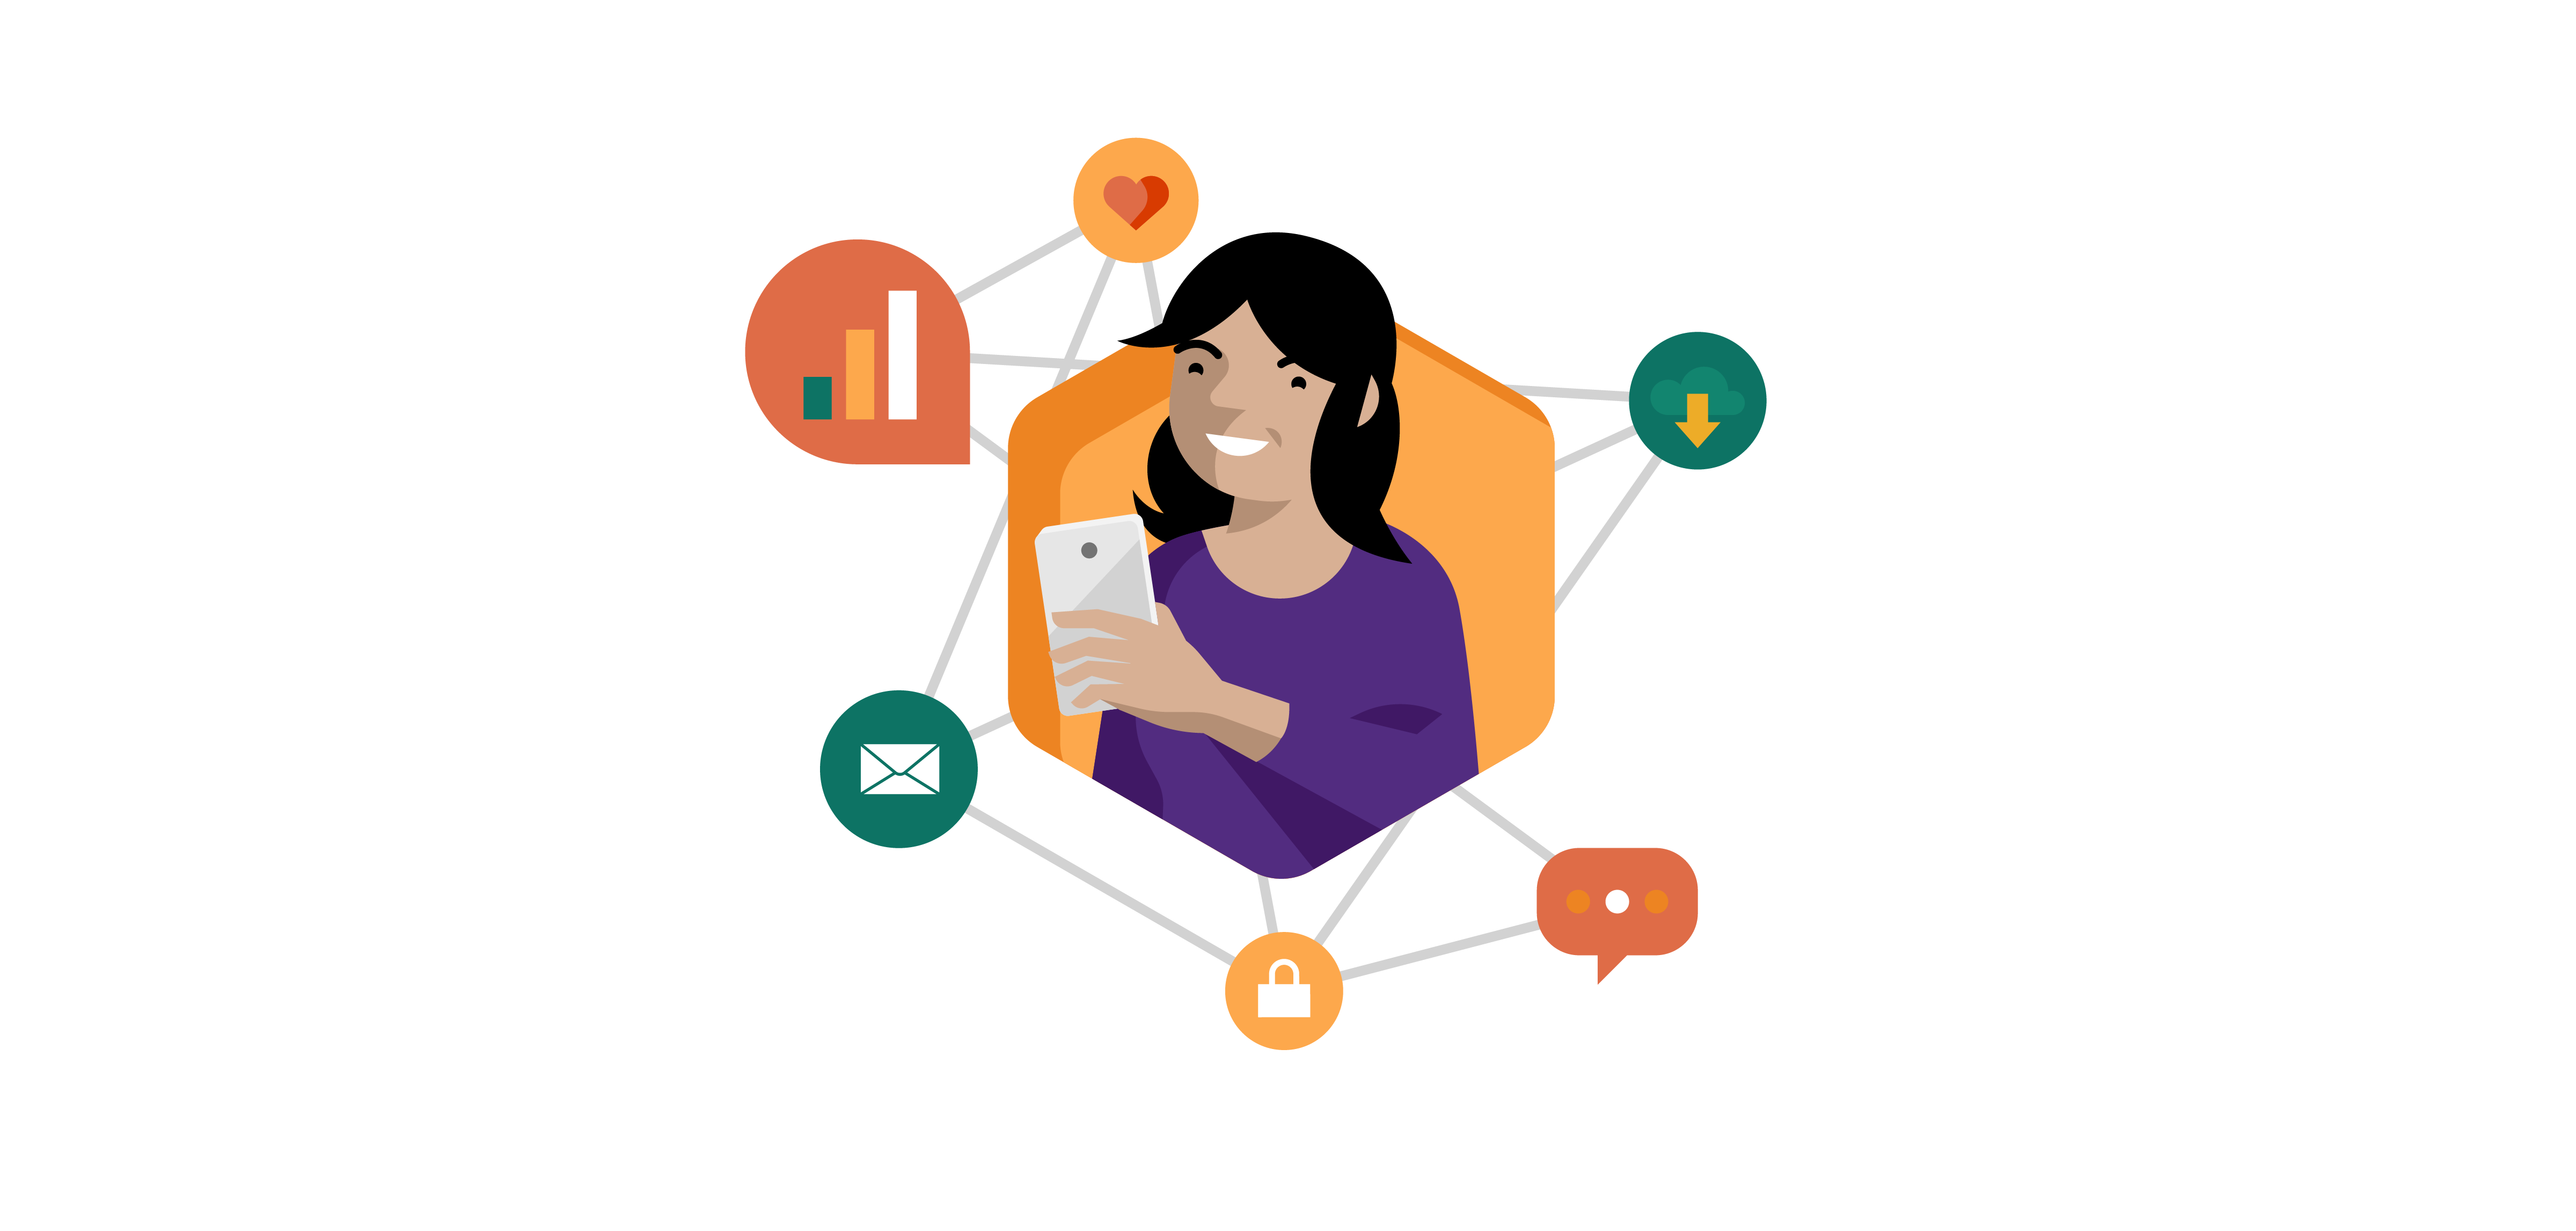 Illustration of a woman surrounded by a grid of apps